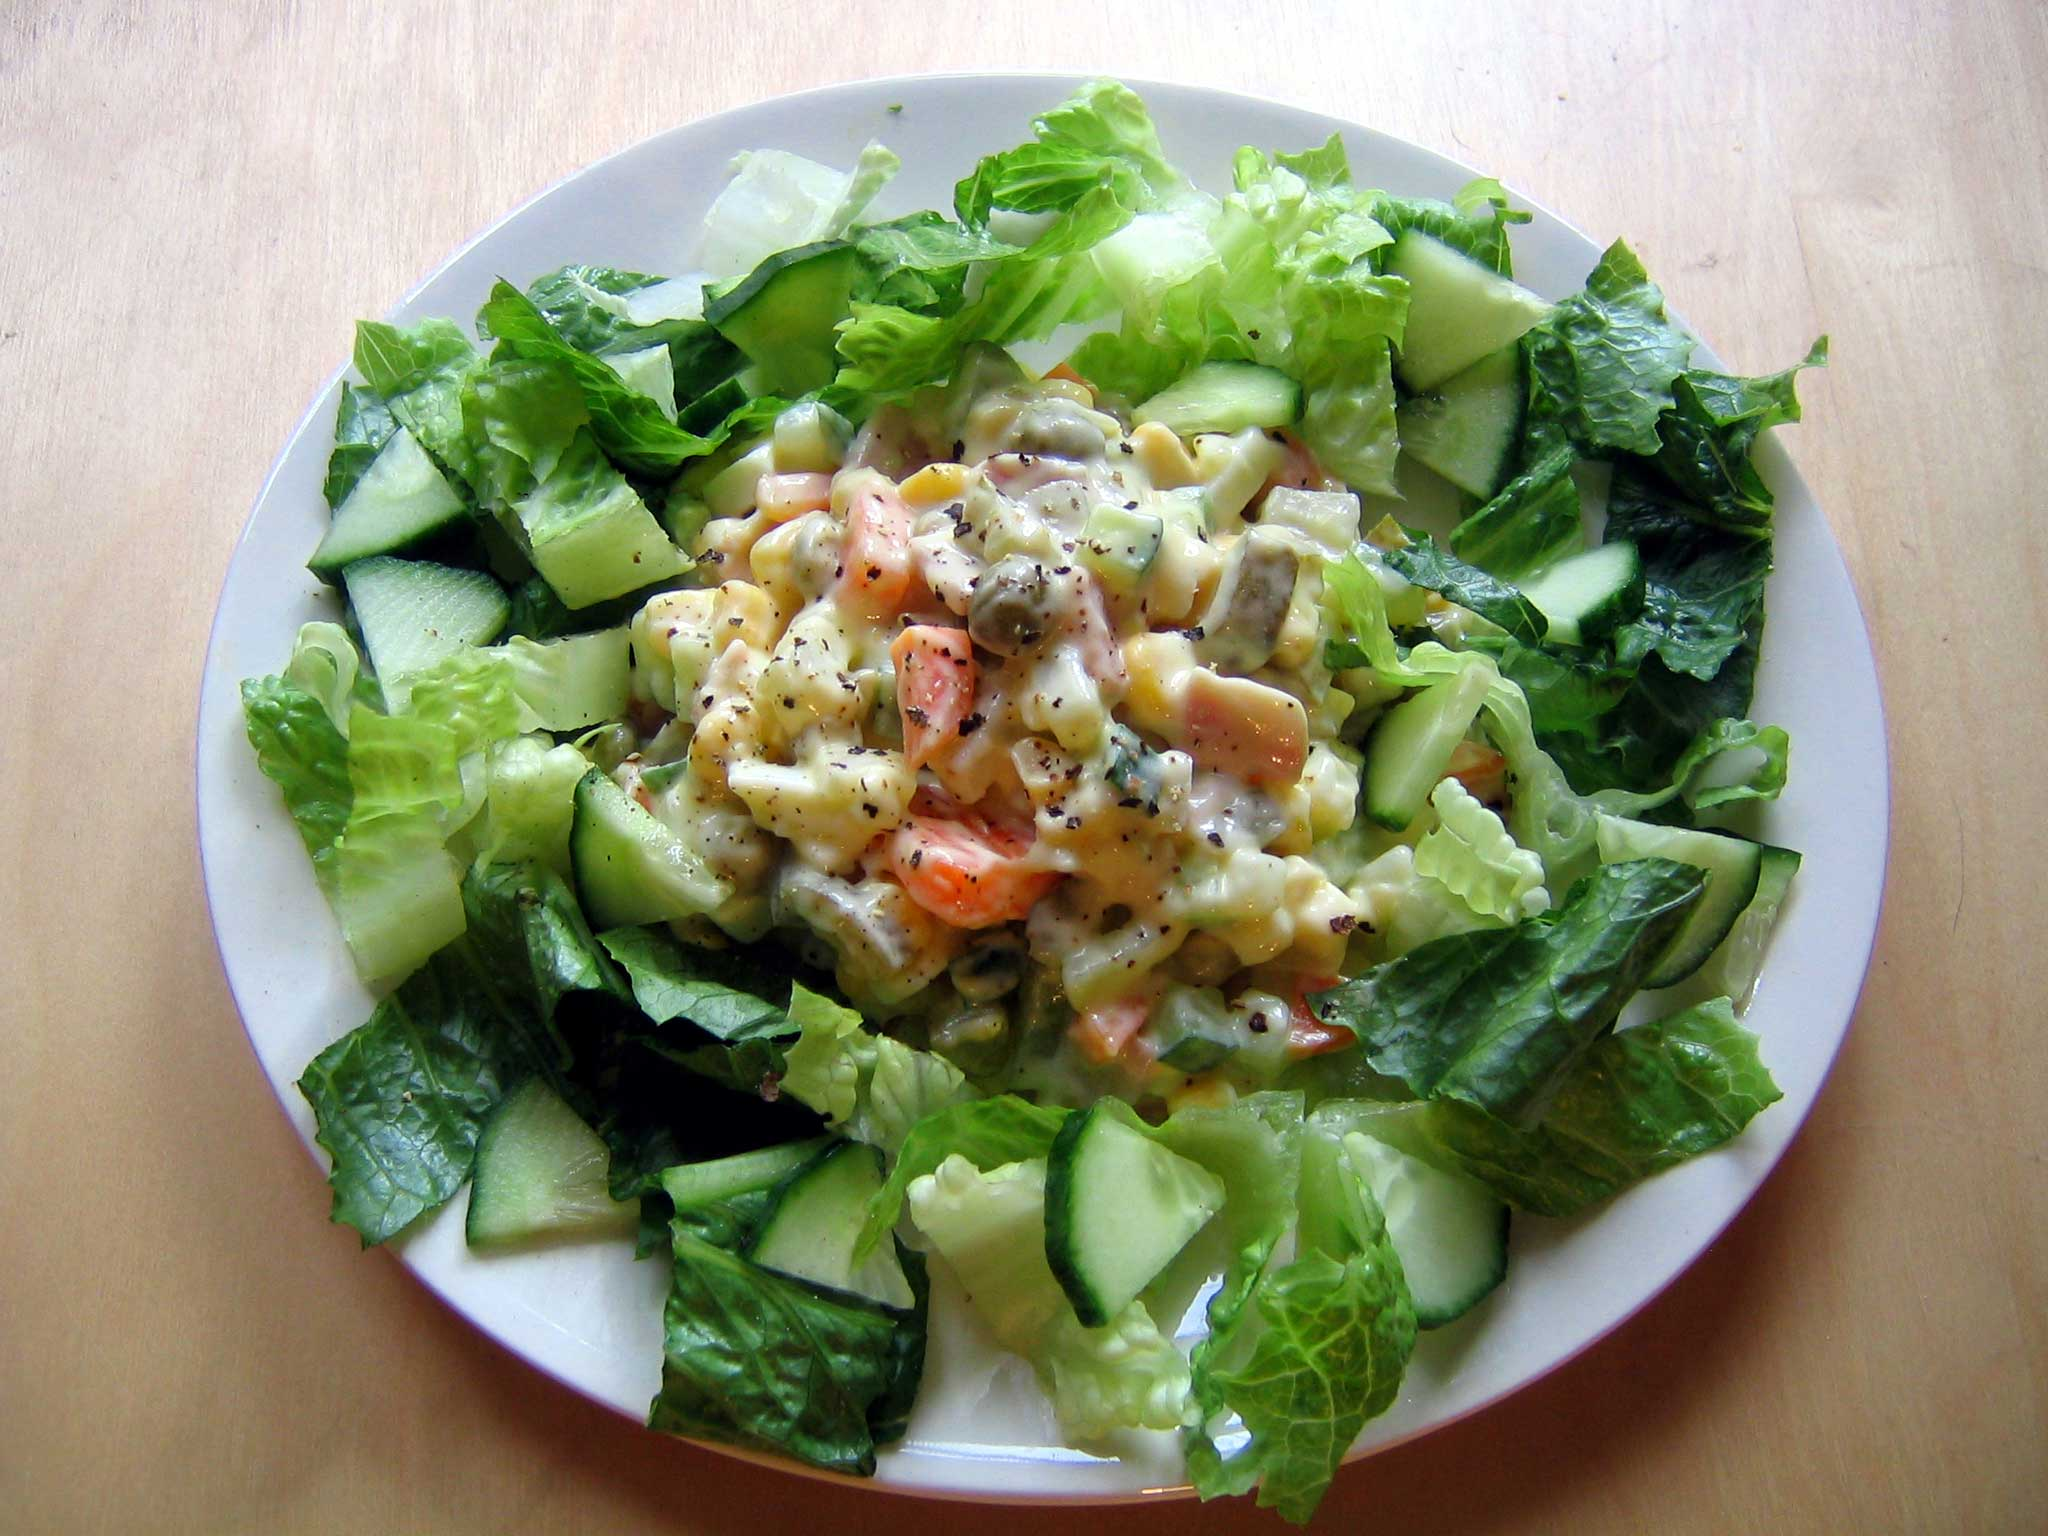 Salad Prolongs Essentially Meaningless Life Another Half Hour